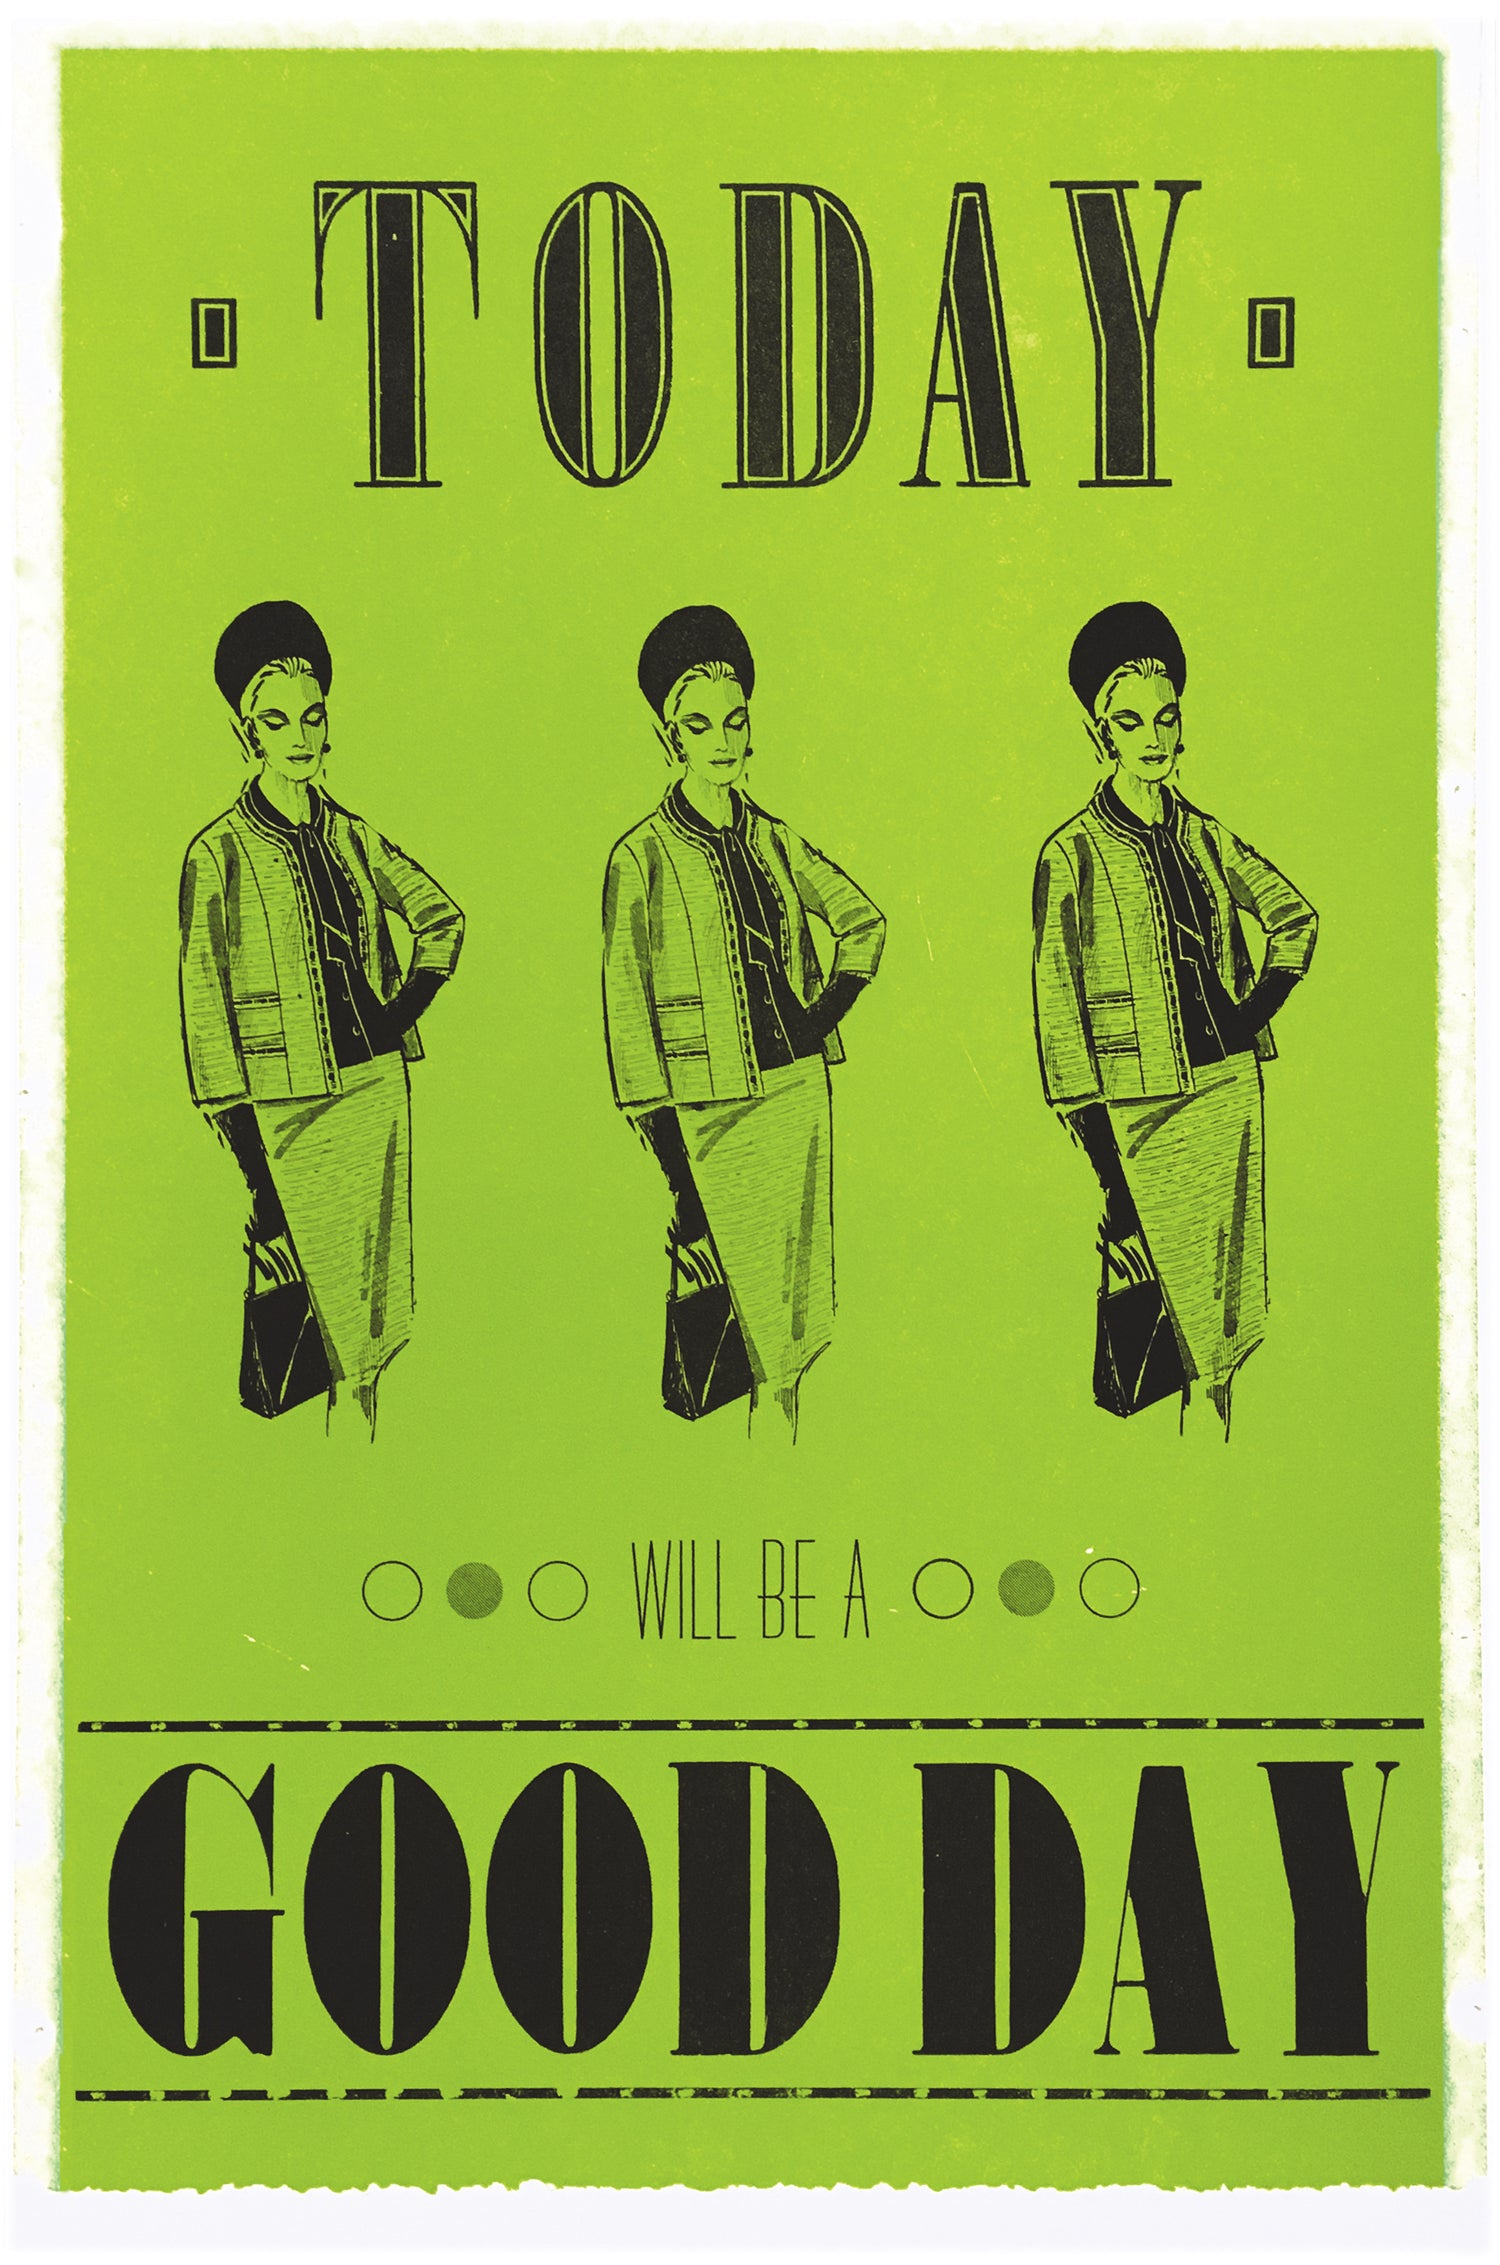 Today will be a good day positive motivational letterpress poster